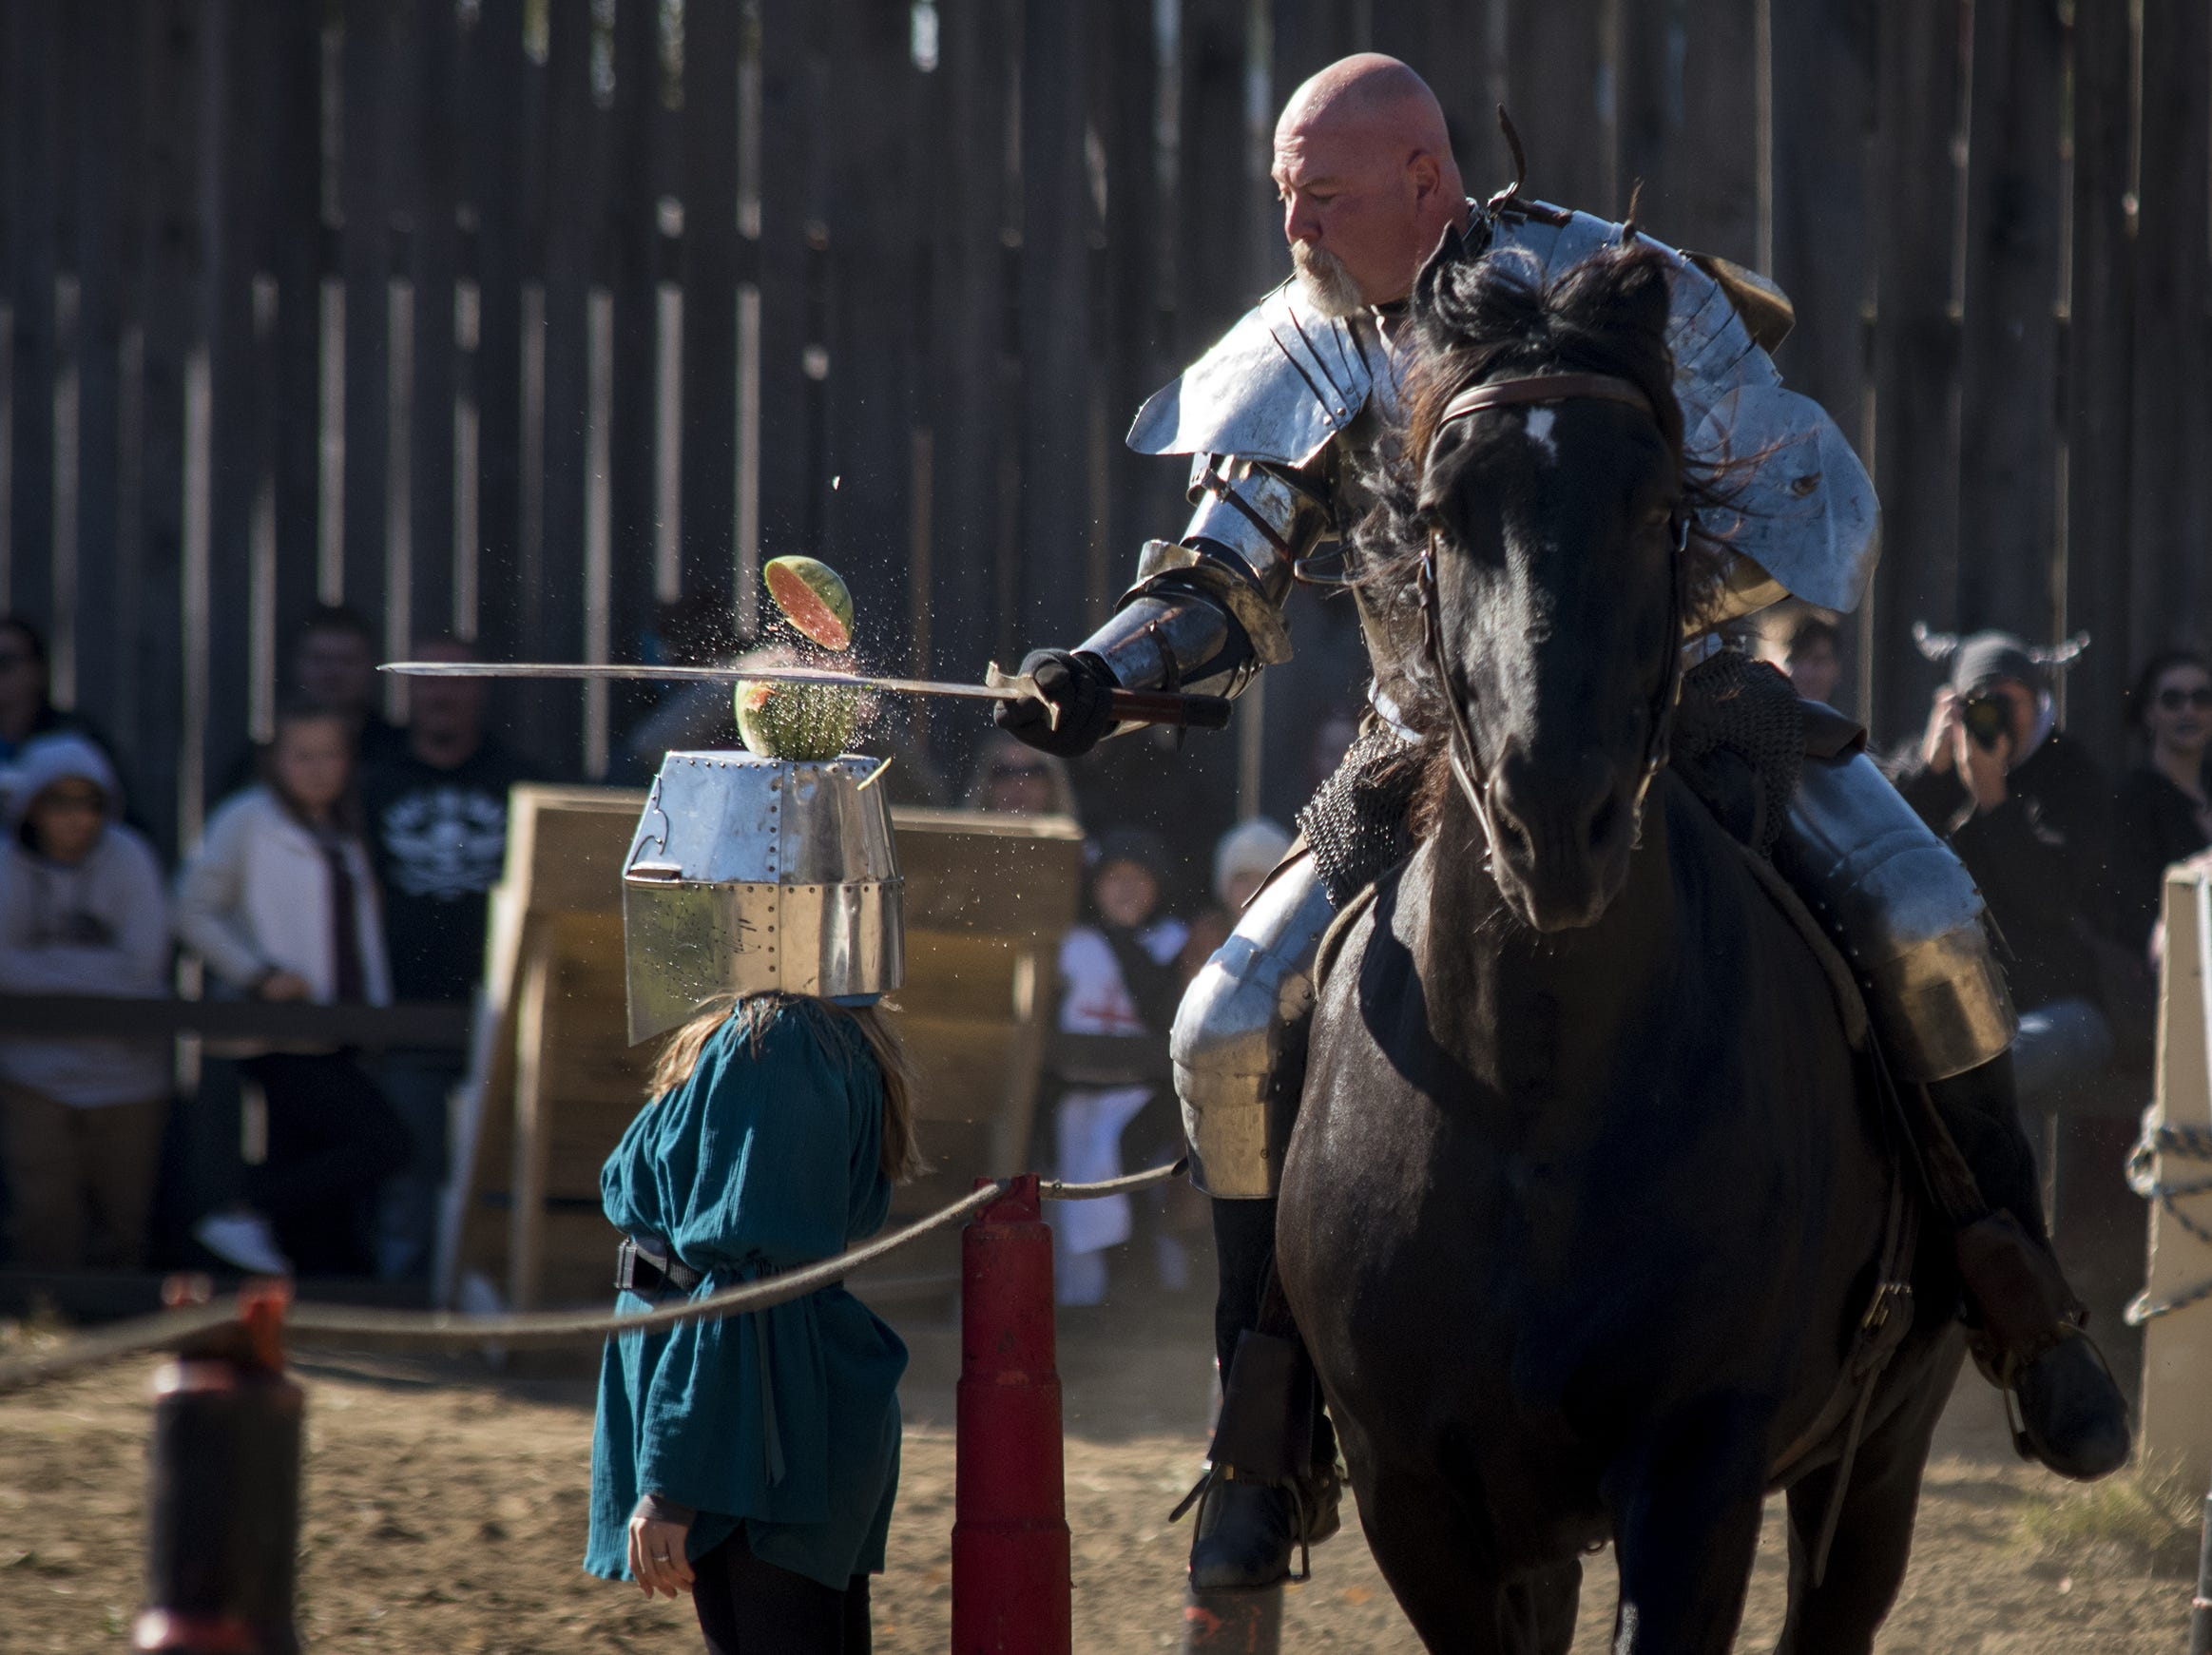 Sir Robert chops a watermelon in half as it is balanced on someone's head during the live jousting show at the Ohio Renaissance Festival Sunday, October 21, 2018 in Waynesville, Ohio.